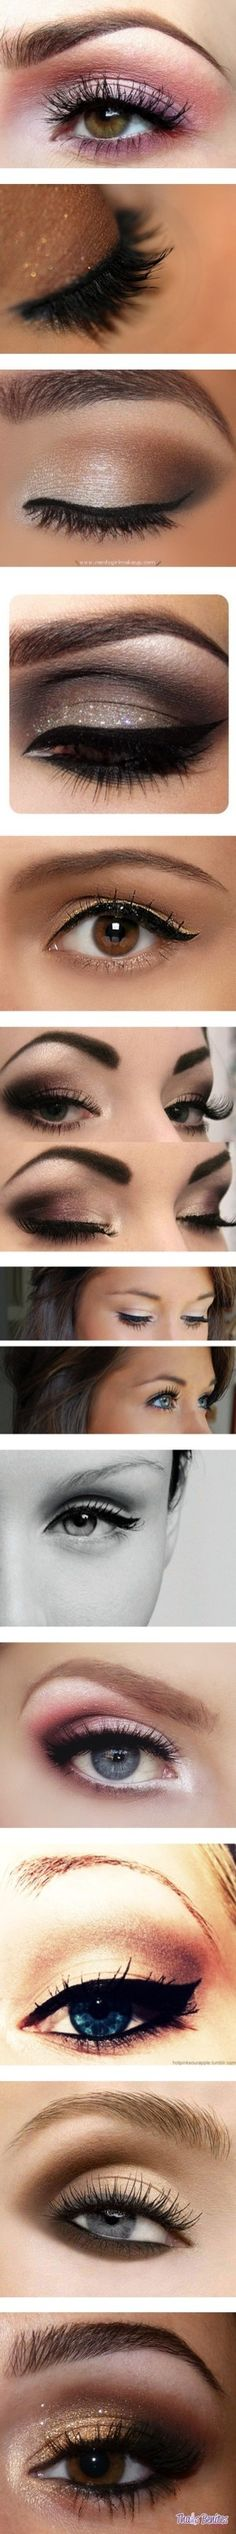 Category » Hair and Beauty Styles « @ Hair Color and Makeover Inspiration  classy eye makeup(: